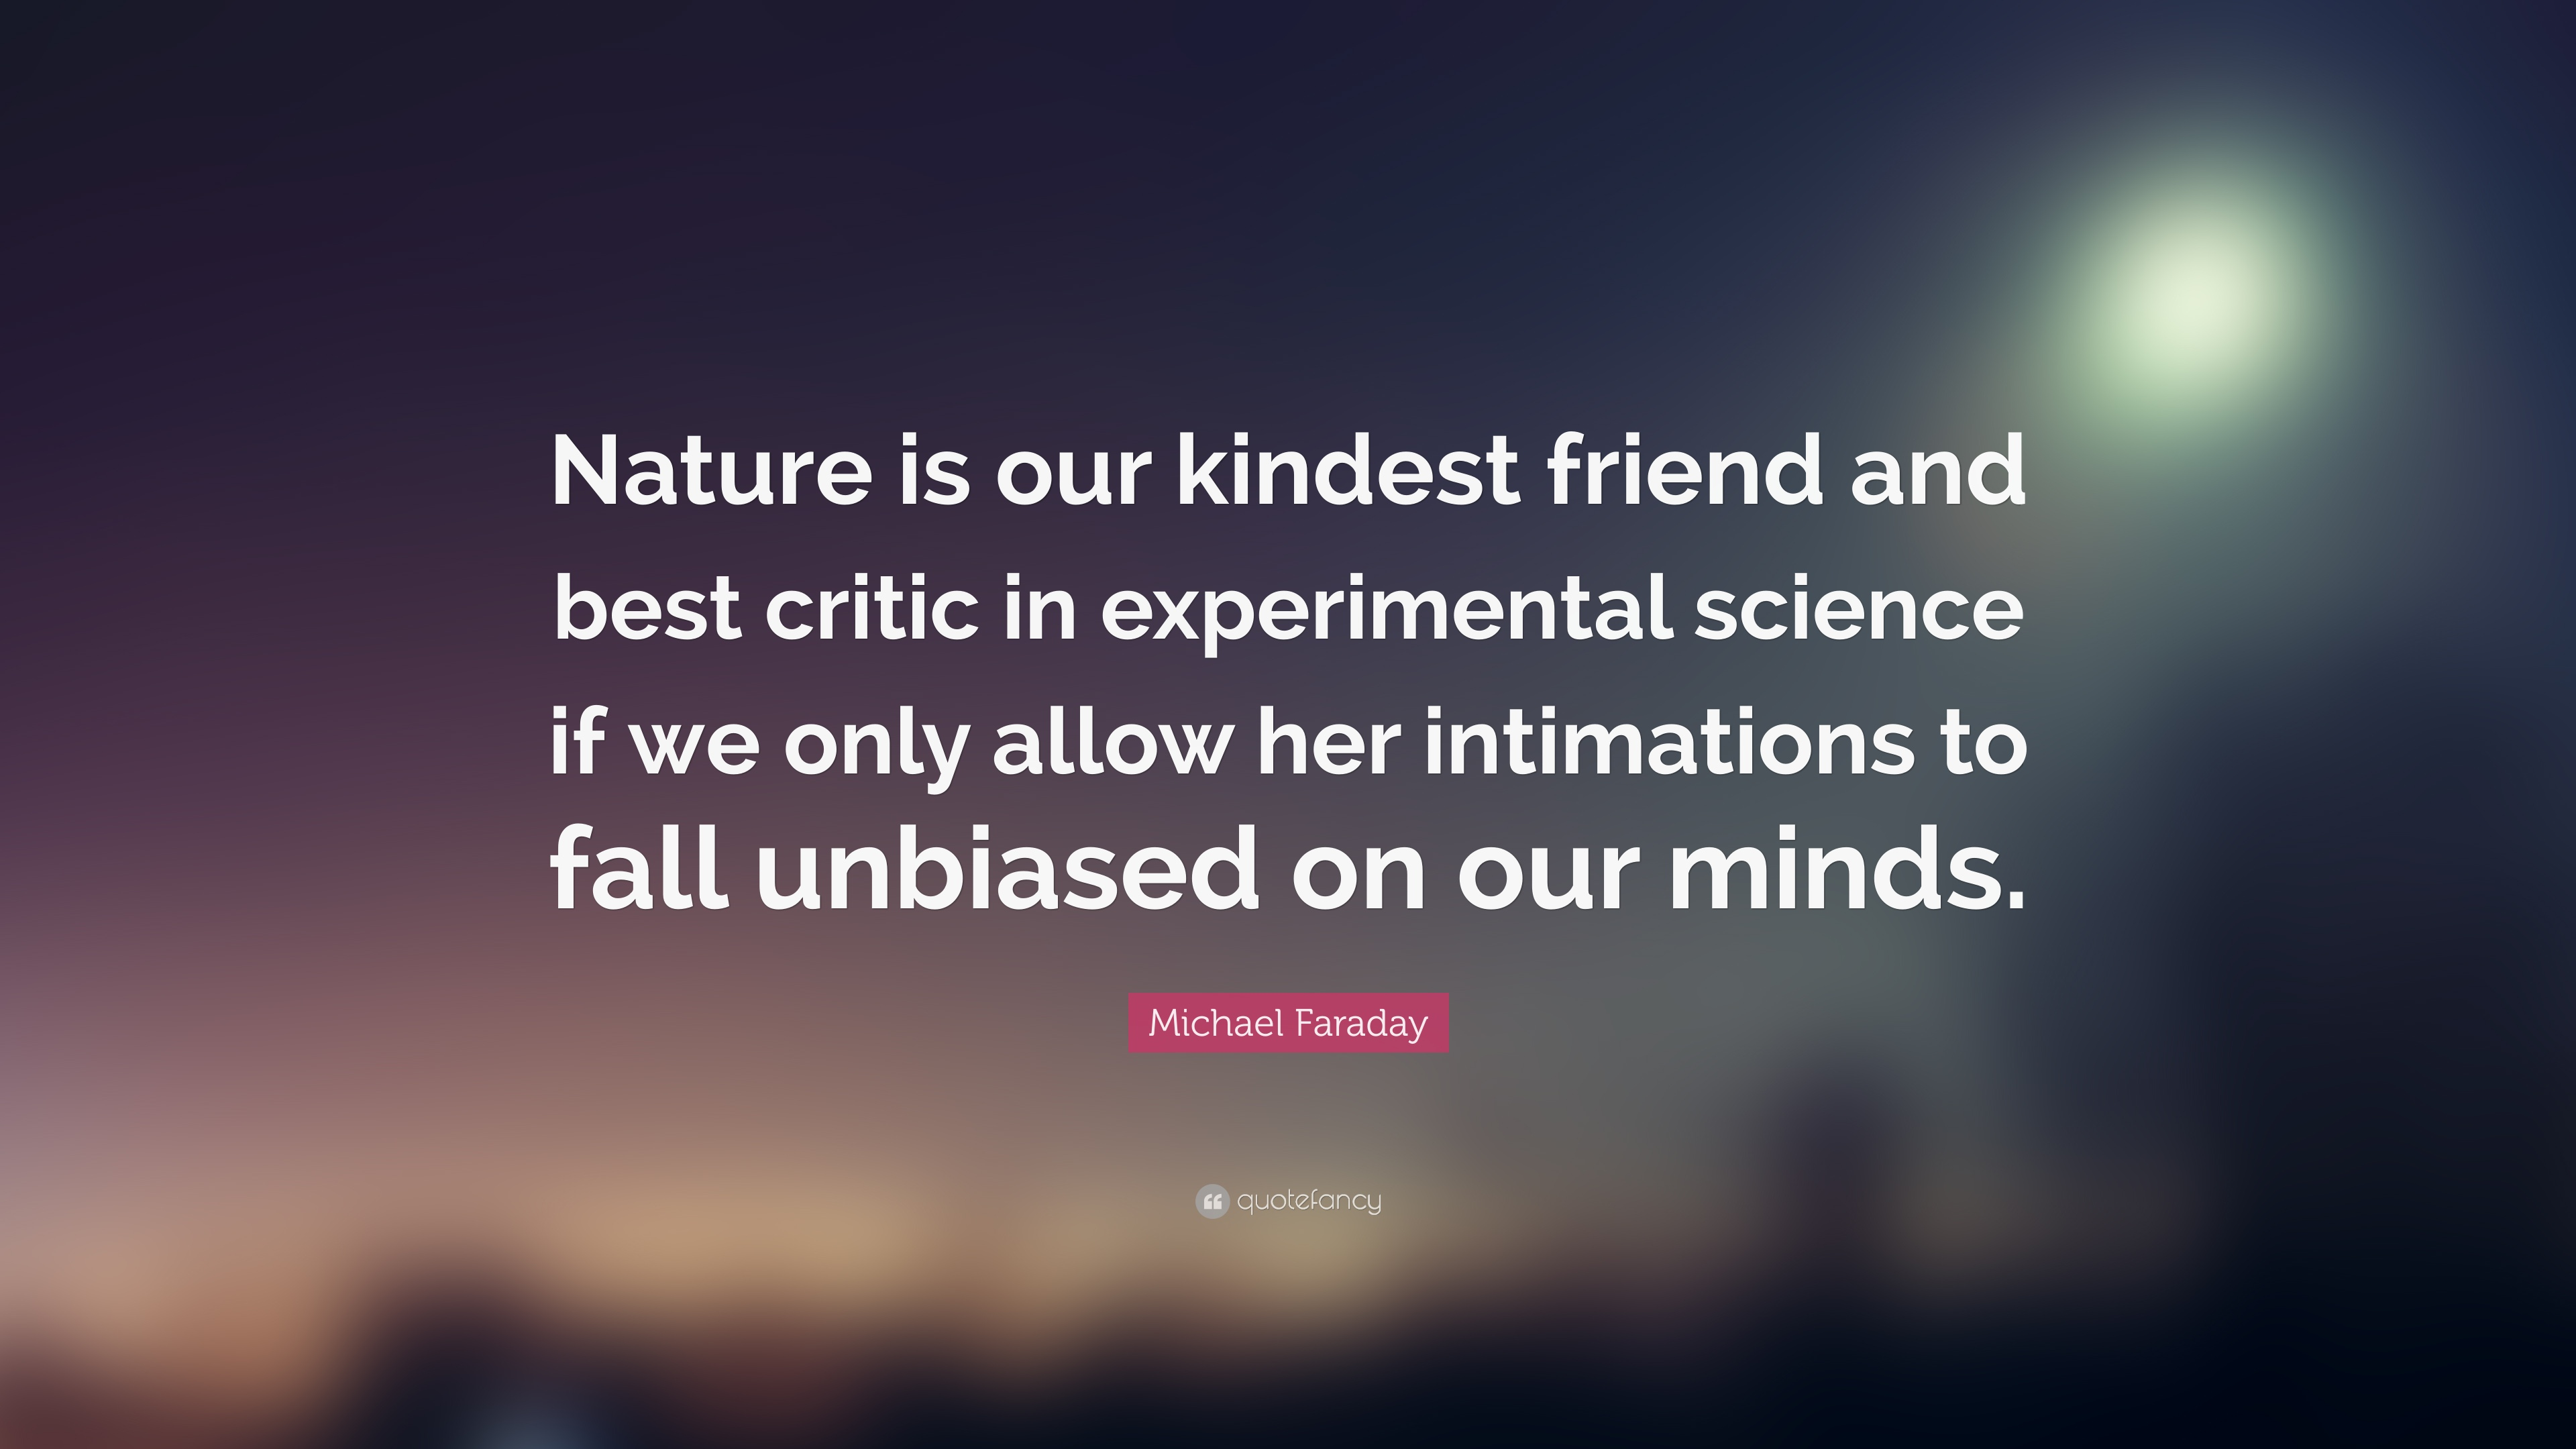 nature is our friend Free sample essay on nature order essay about nature written by degree holding writers at our professional writing service nature is our friend.